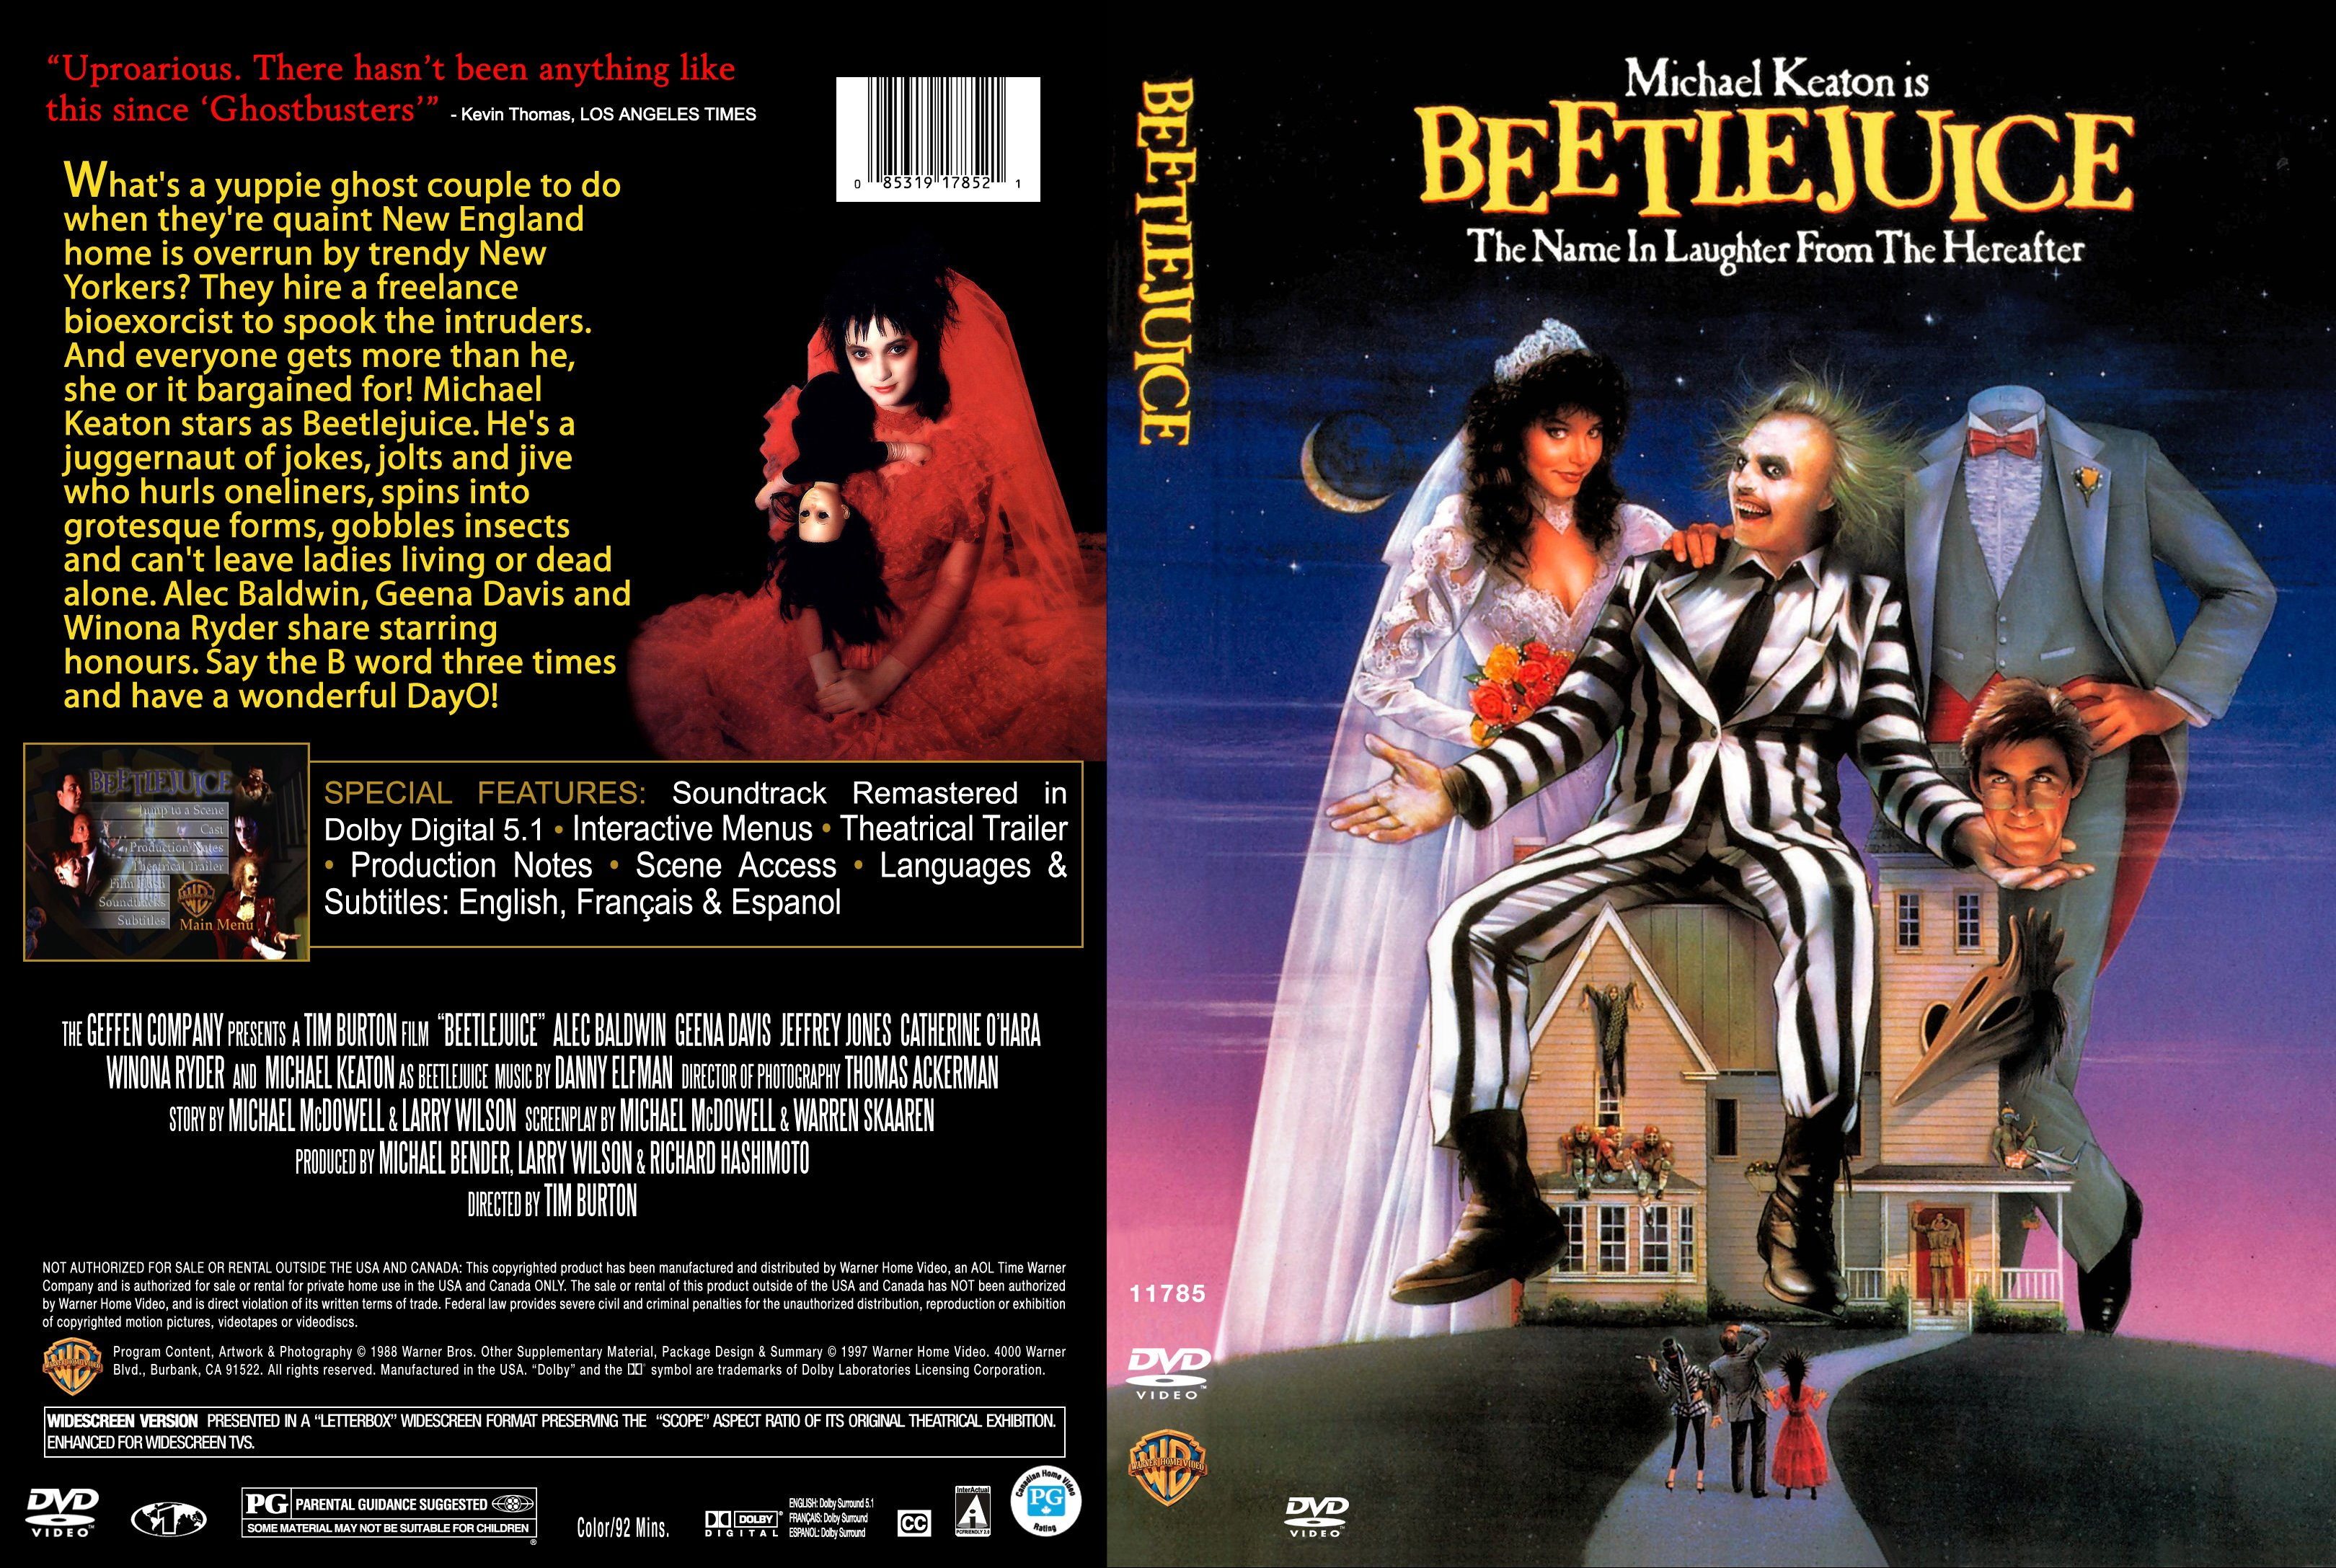 Beetlejuice DVD news: Announcement for Beetlejuice - Seasons 2 and ...